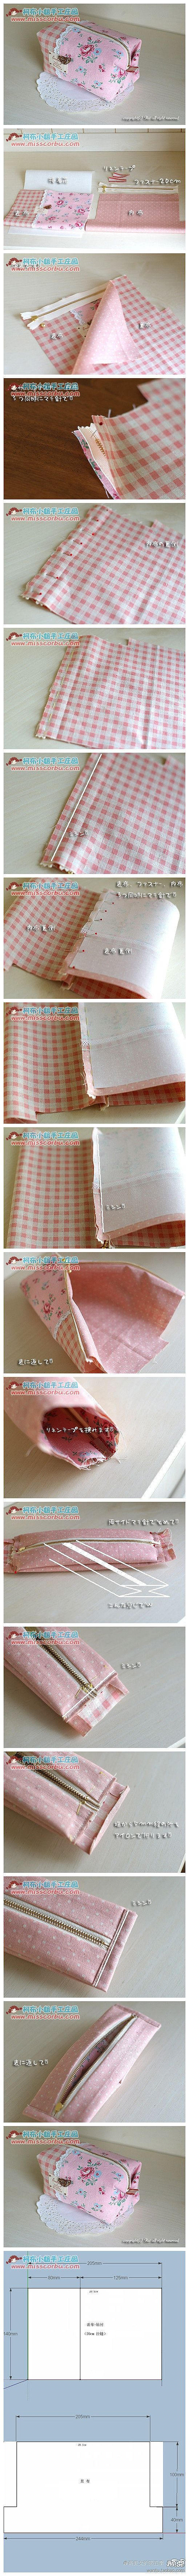 Super girly boxy pouch with picture tutorial